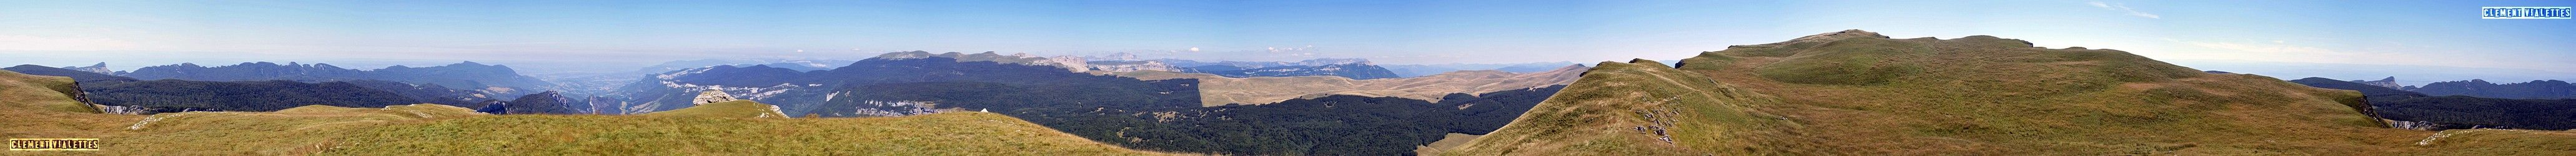 france-vercors-photographie_panoramique_04.jpg